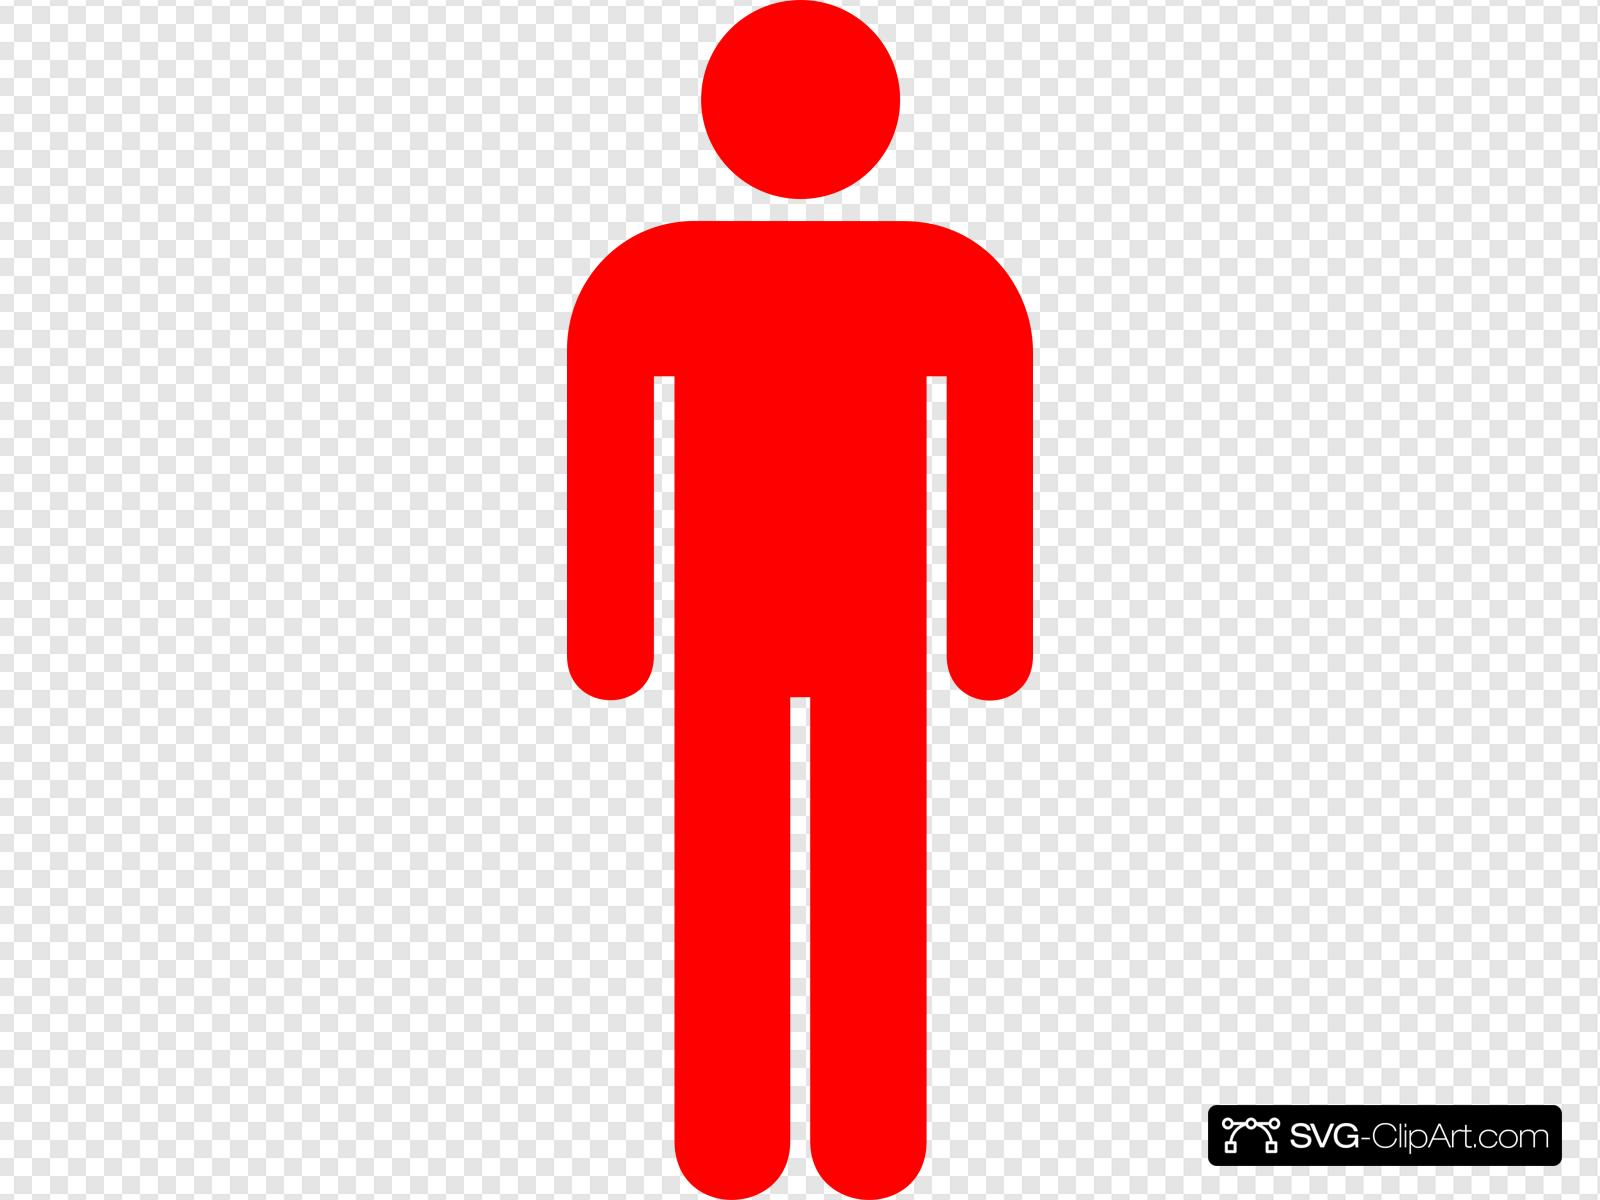 Red Man Clip art, Icon and SVG.